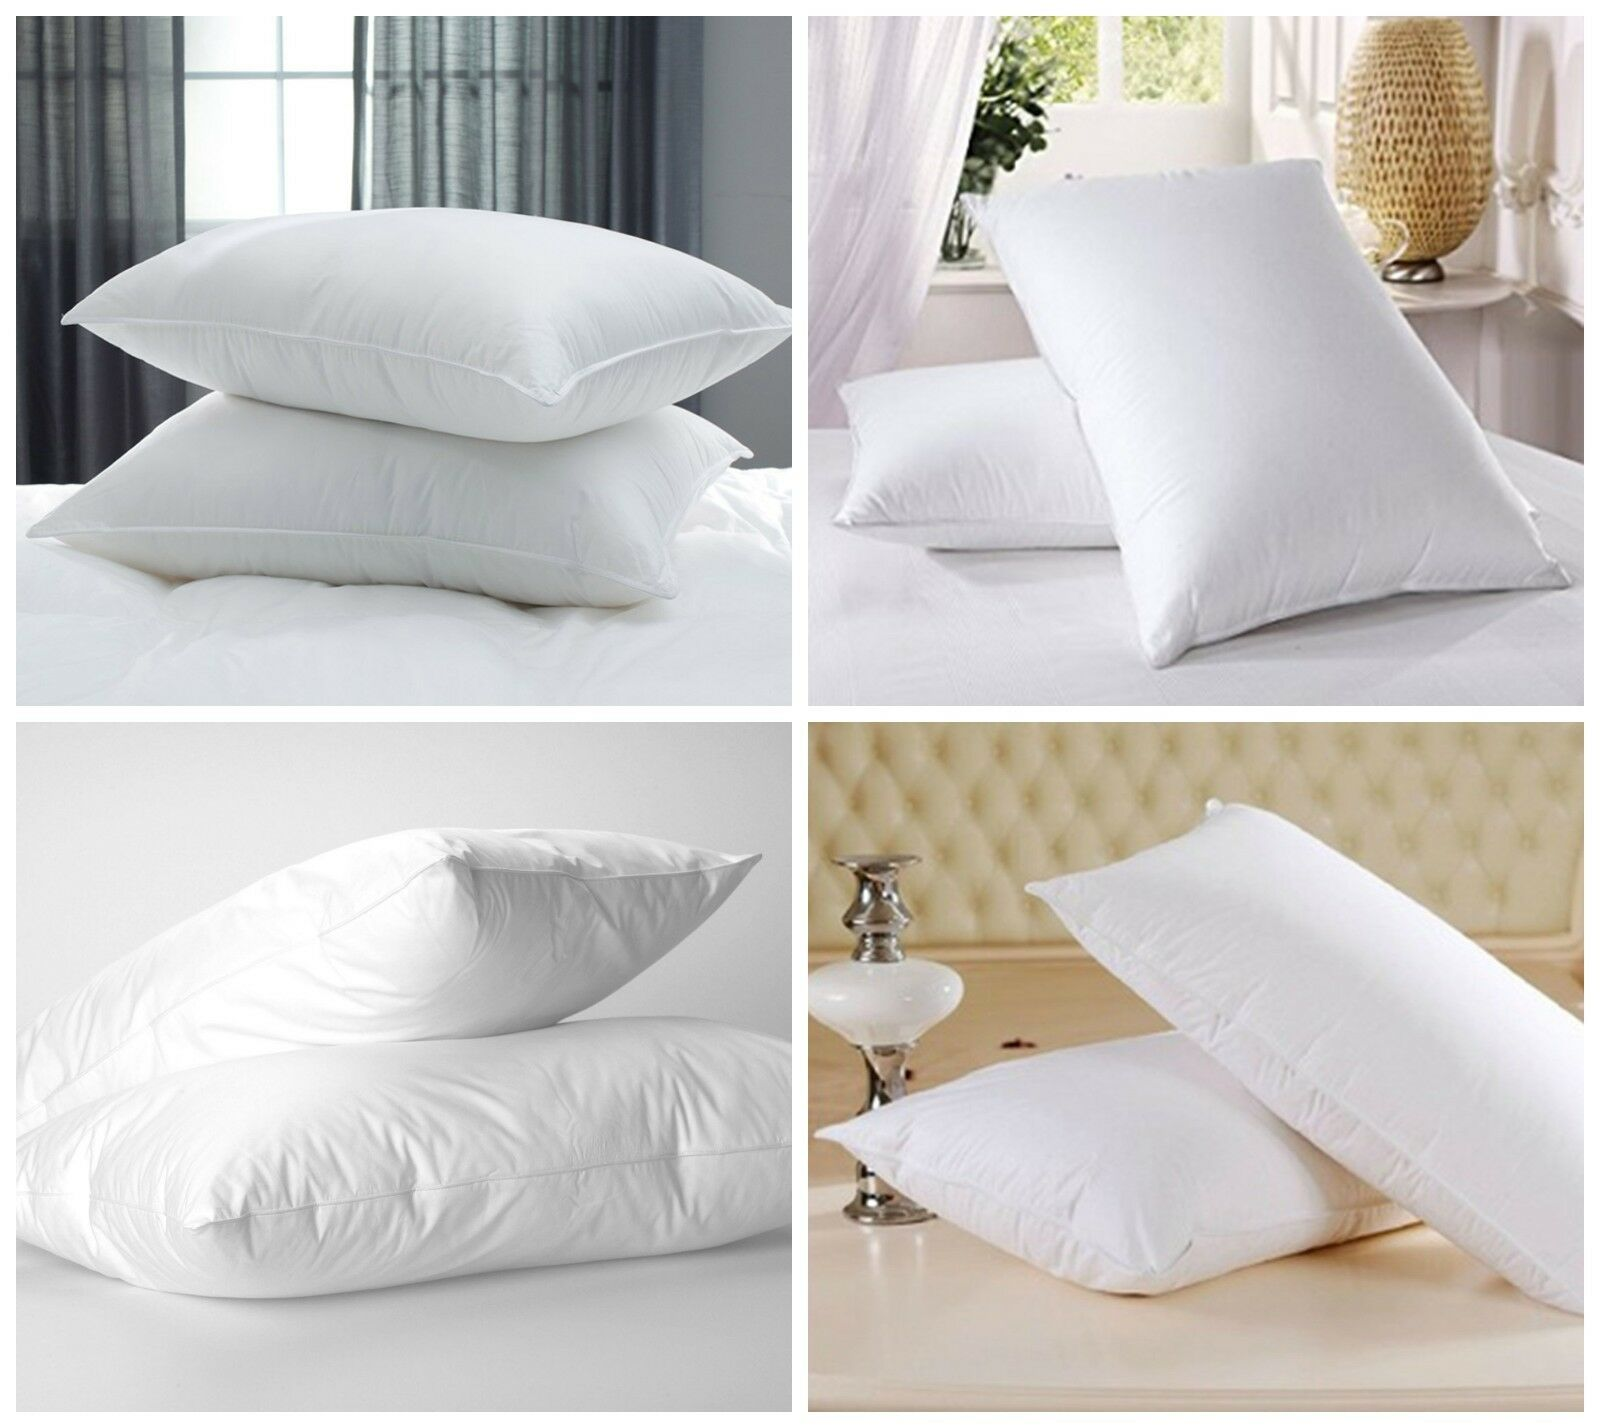 2 Extra Bouncy Luxury Bounce Back Pillows 2,4,6 /& 8 Packs OR 2 Housewife Pillows